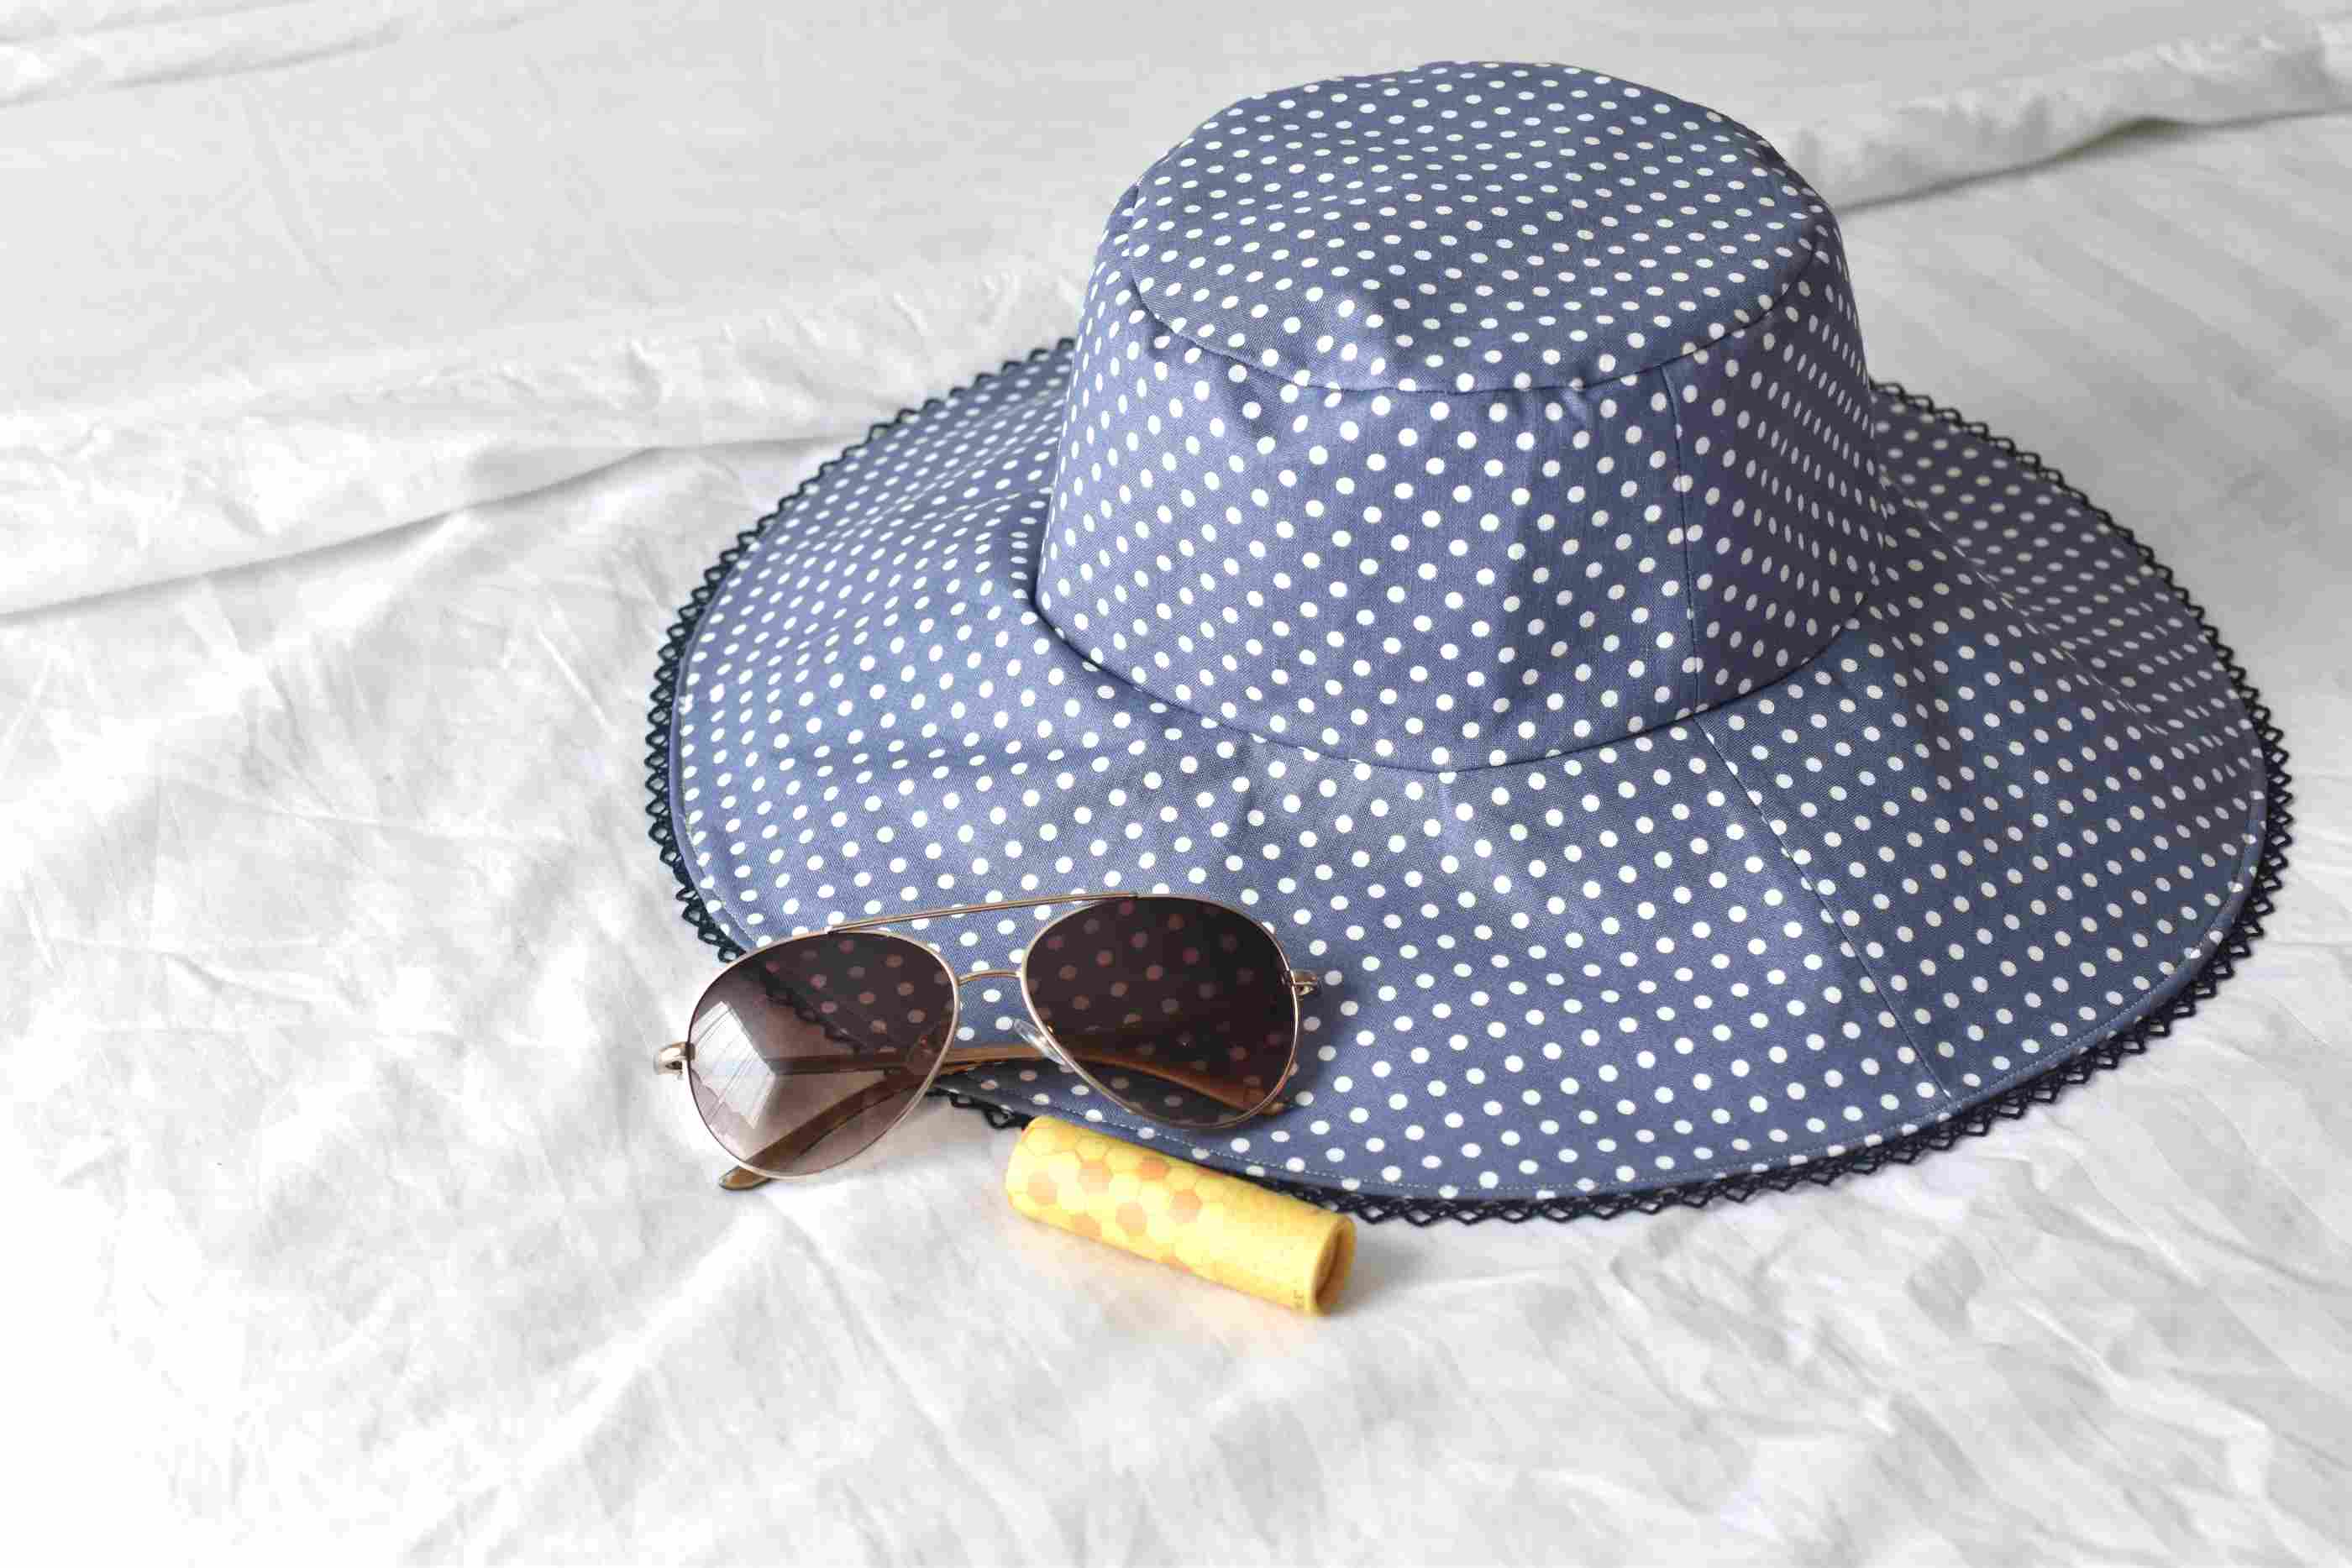 How To Sew A Reversible Sun Hat